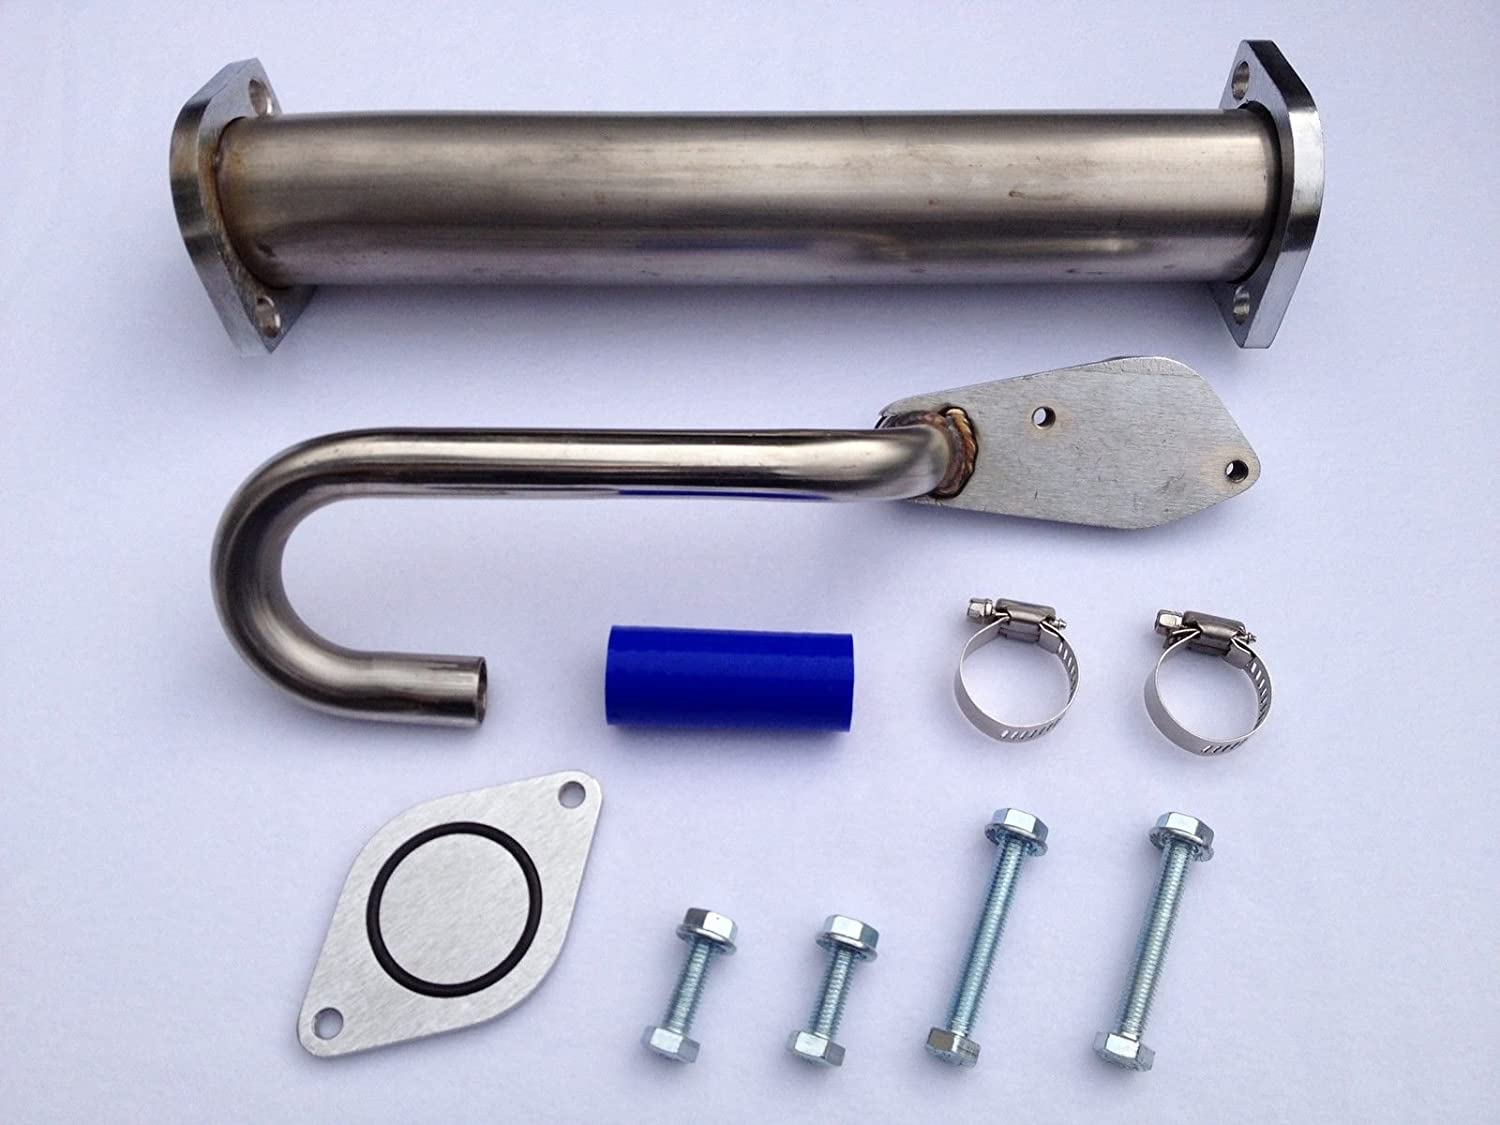 Ford 2003-2007 F250 350 6.0l EGR Bypass and Delete KIT Powerstroke Diesel Napol Performance